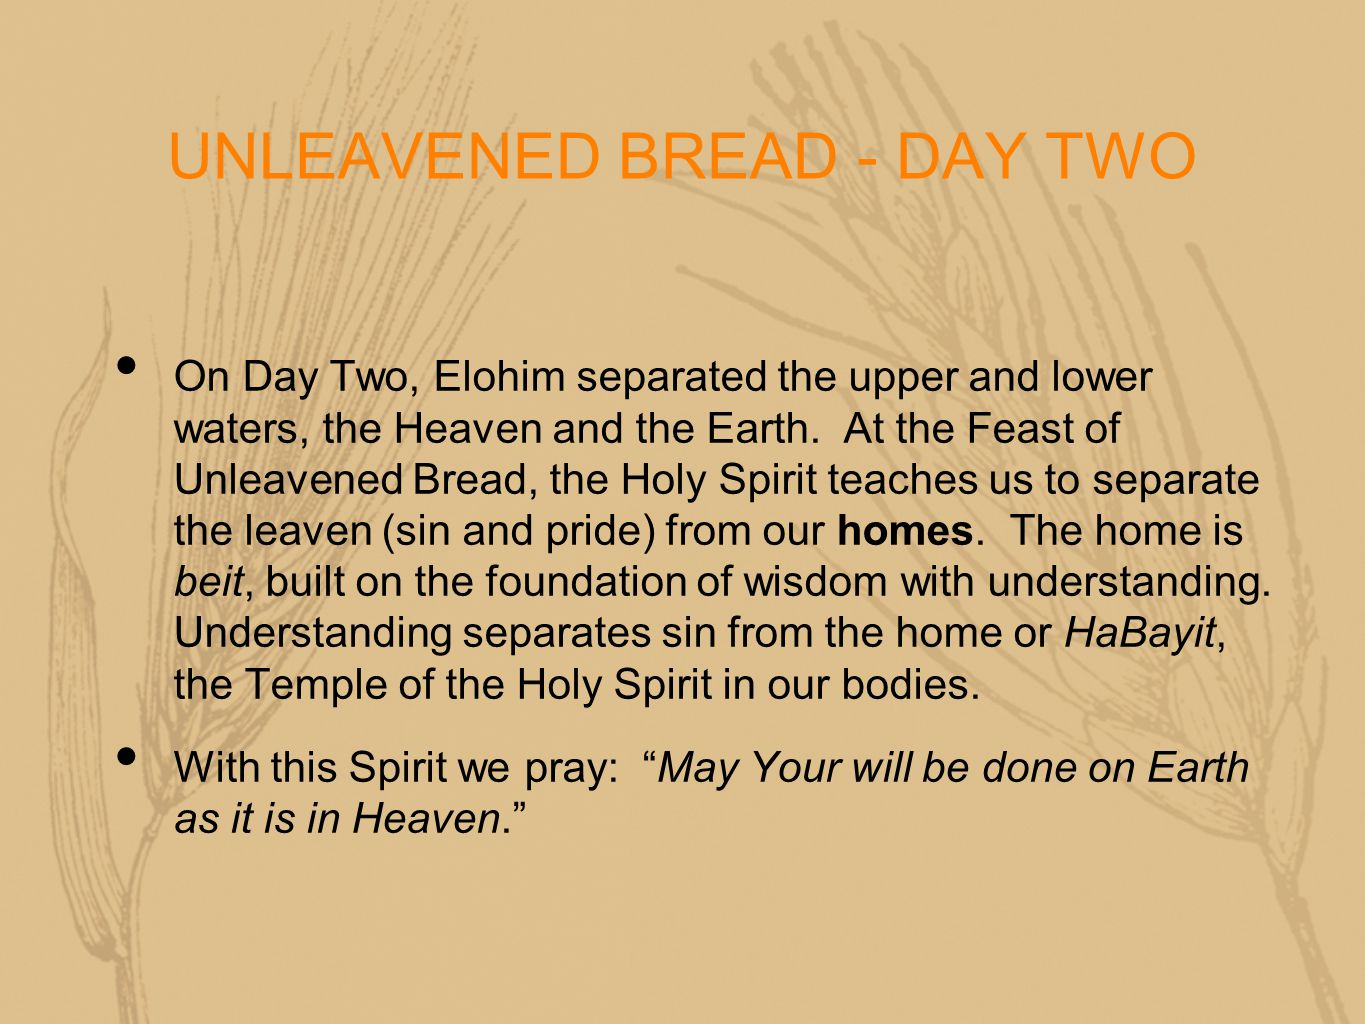 UNLEAVENED BREAD - DAY TWO On Day Two, Elohim separated the upper and lower waters, the Heaven and the Earth.